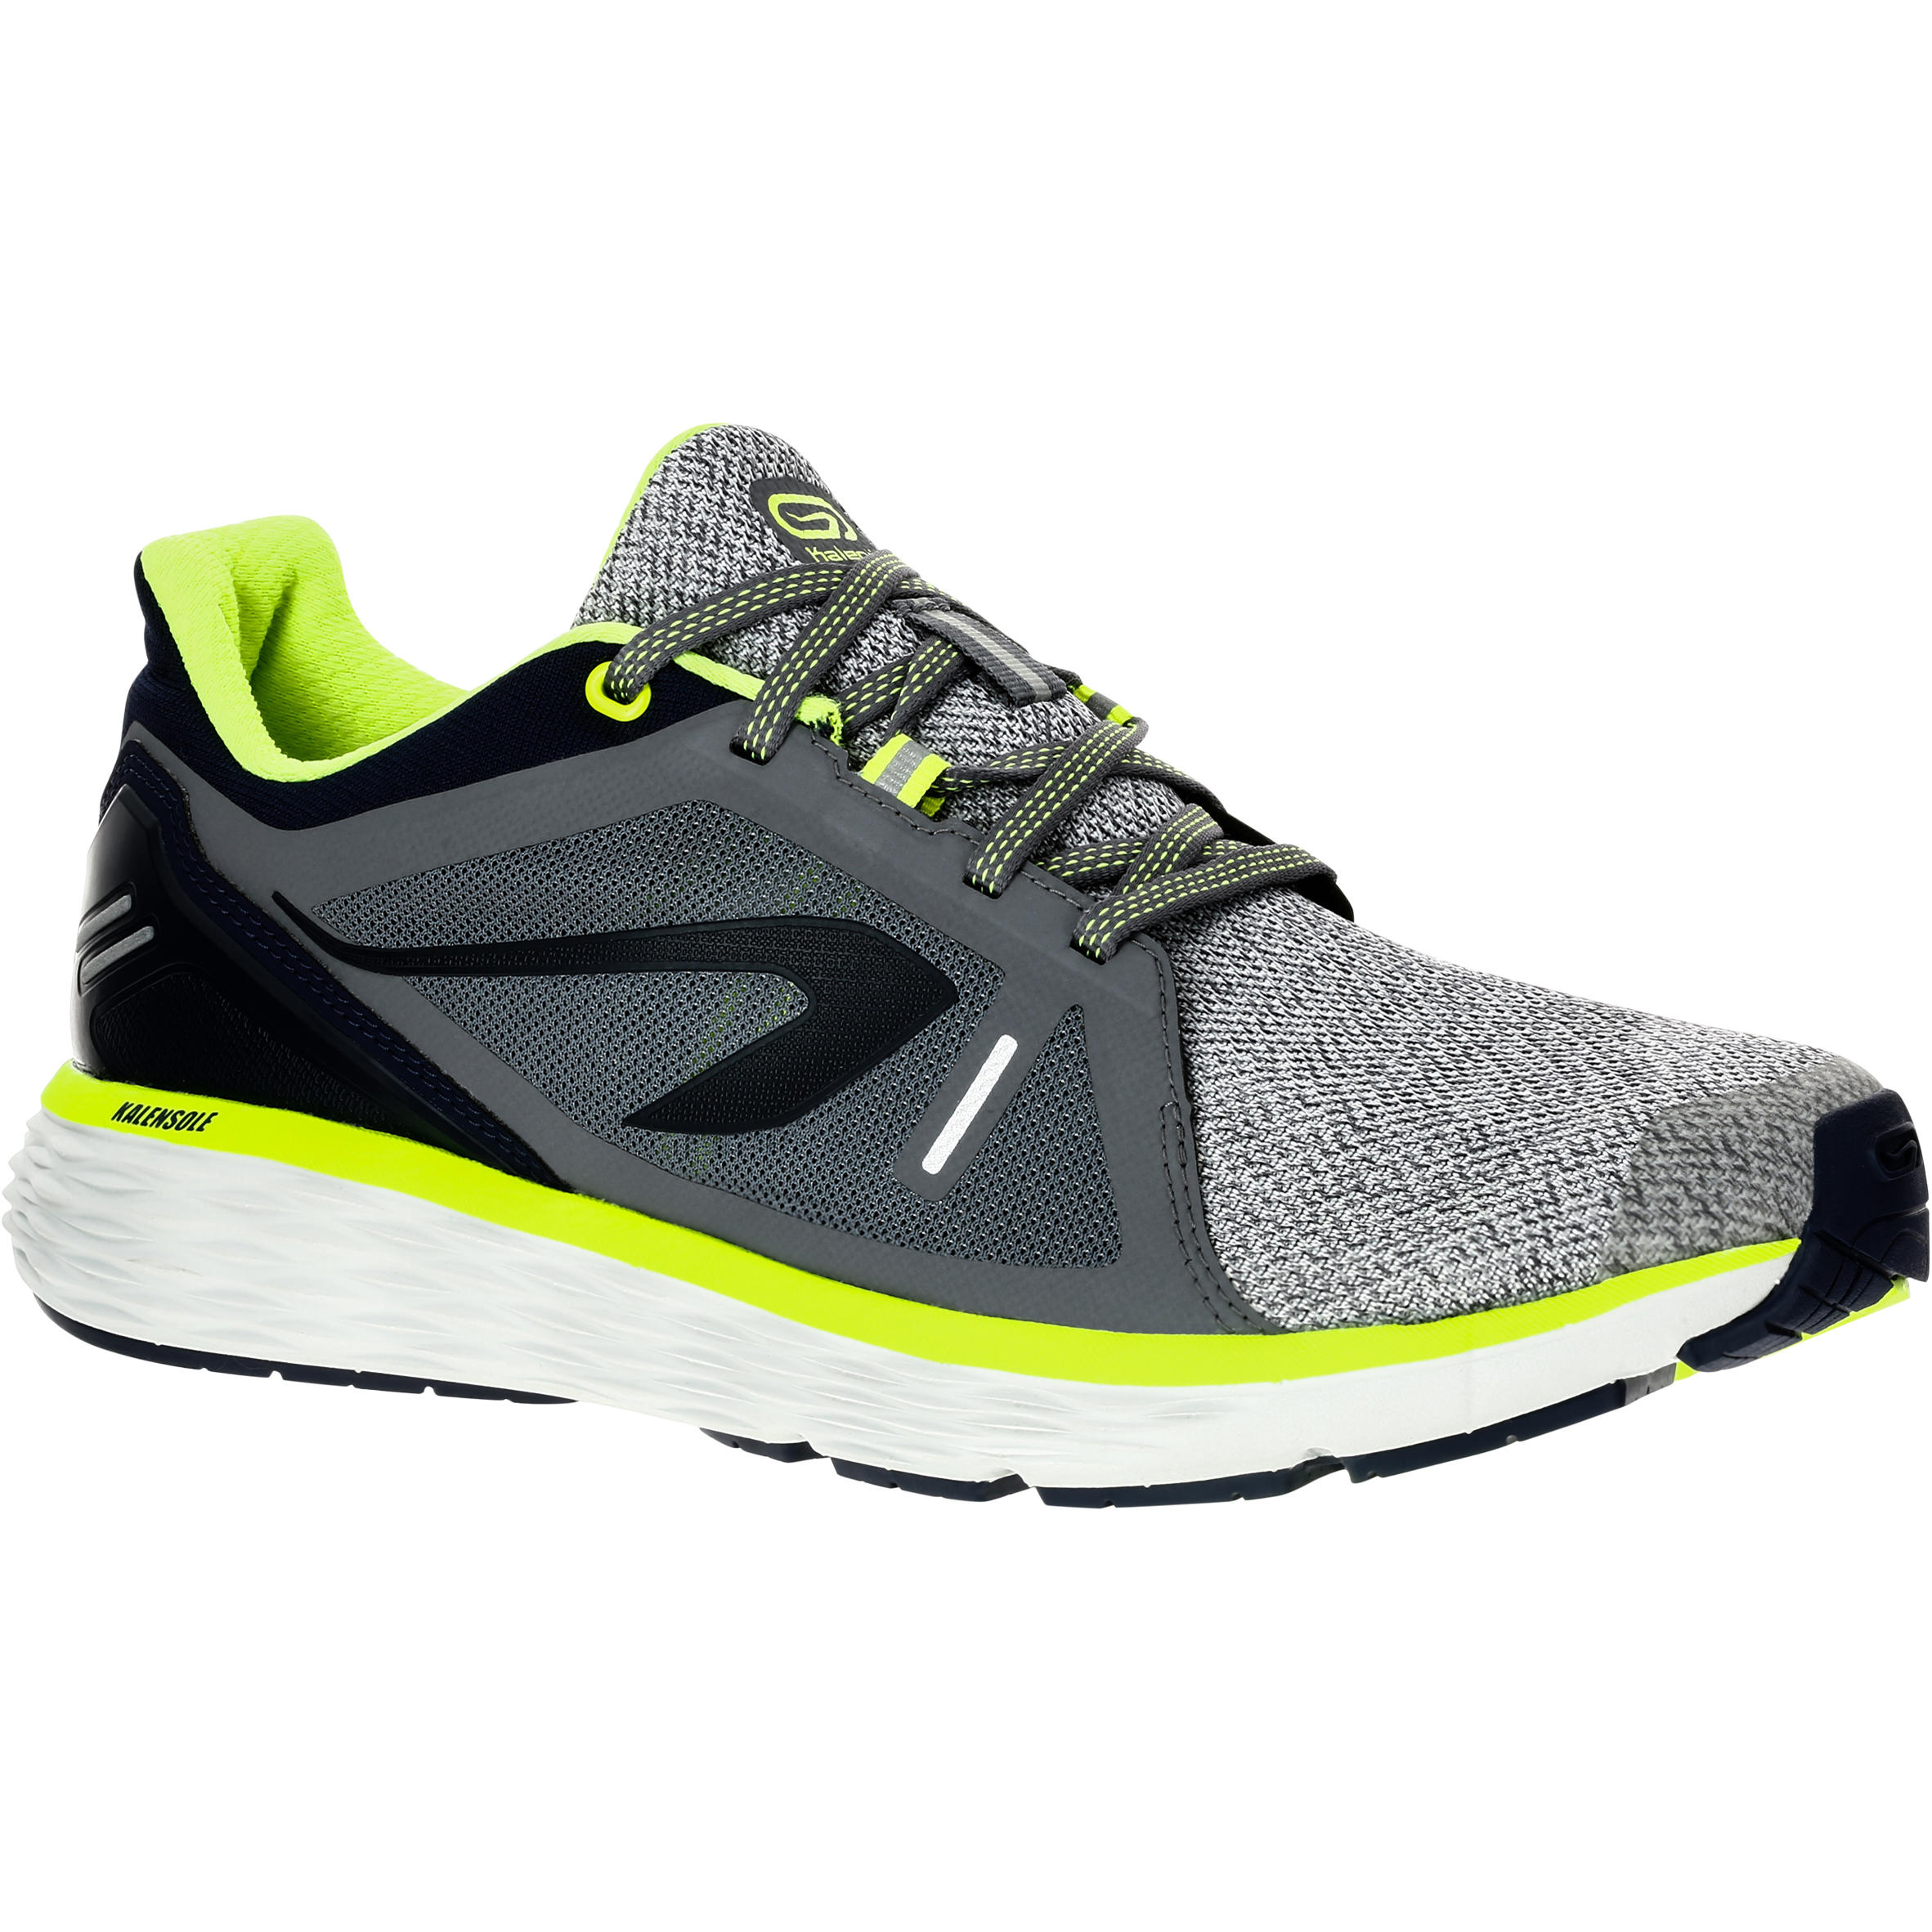 RUN COMFORT MEN'S RUNNING SHOES - GREY